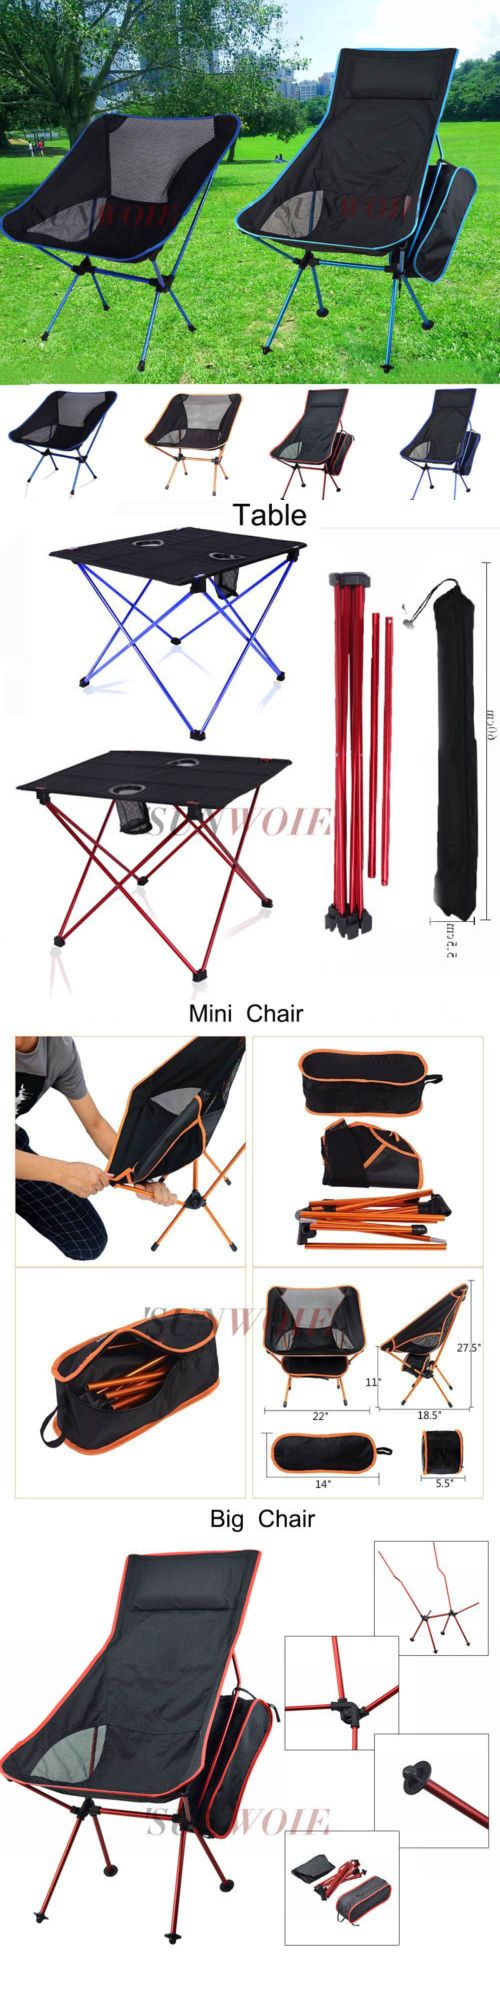 Chairs and Seats 19985: Potable Fishing Table Folding Fishing Chair Mini Chair Outdoor Camping Hiking Us BUY IT NOW ONLY: $41.57